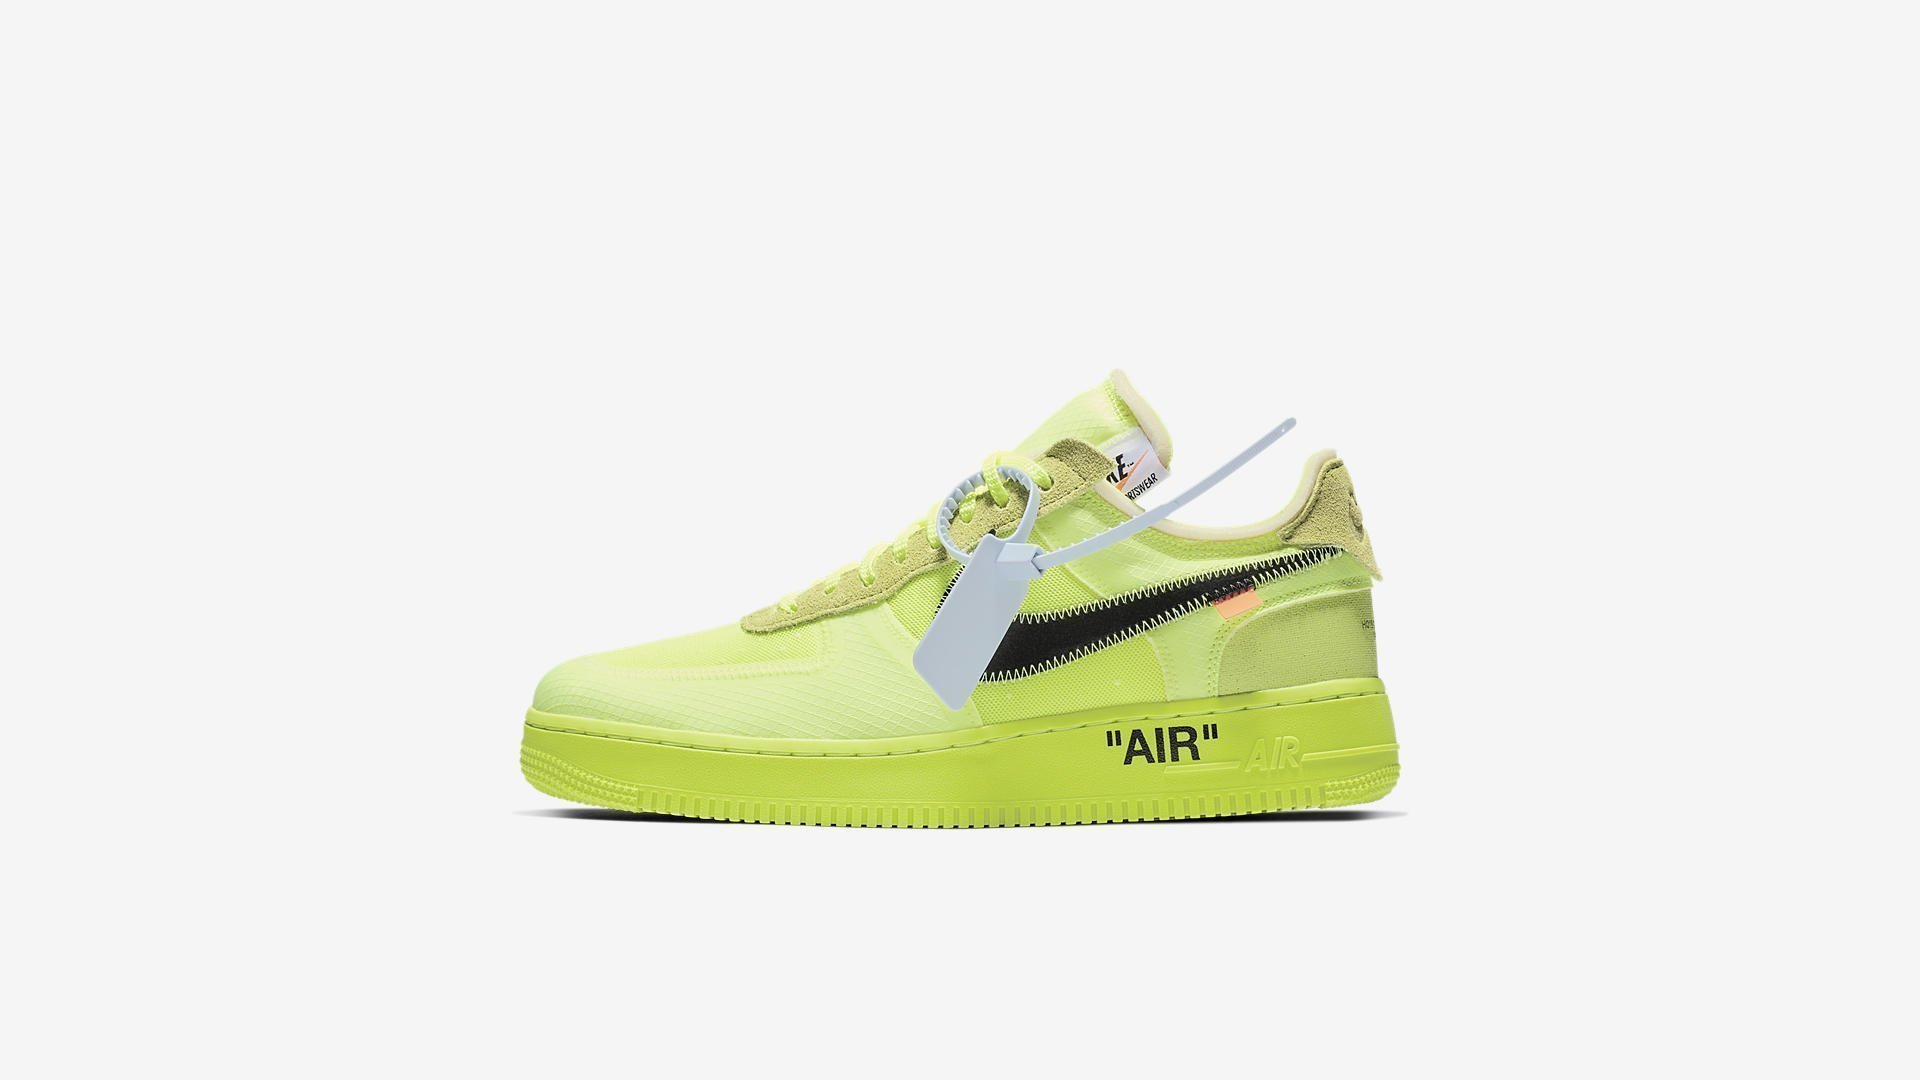 Off White X Nike Air Force 1 Low 'Volt' (AO4606 700)